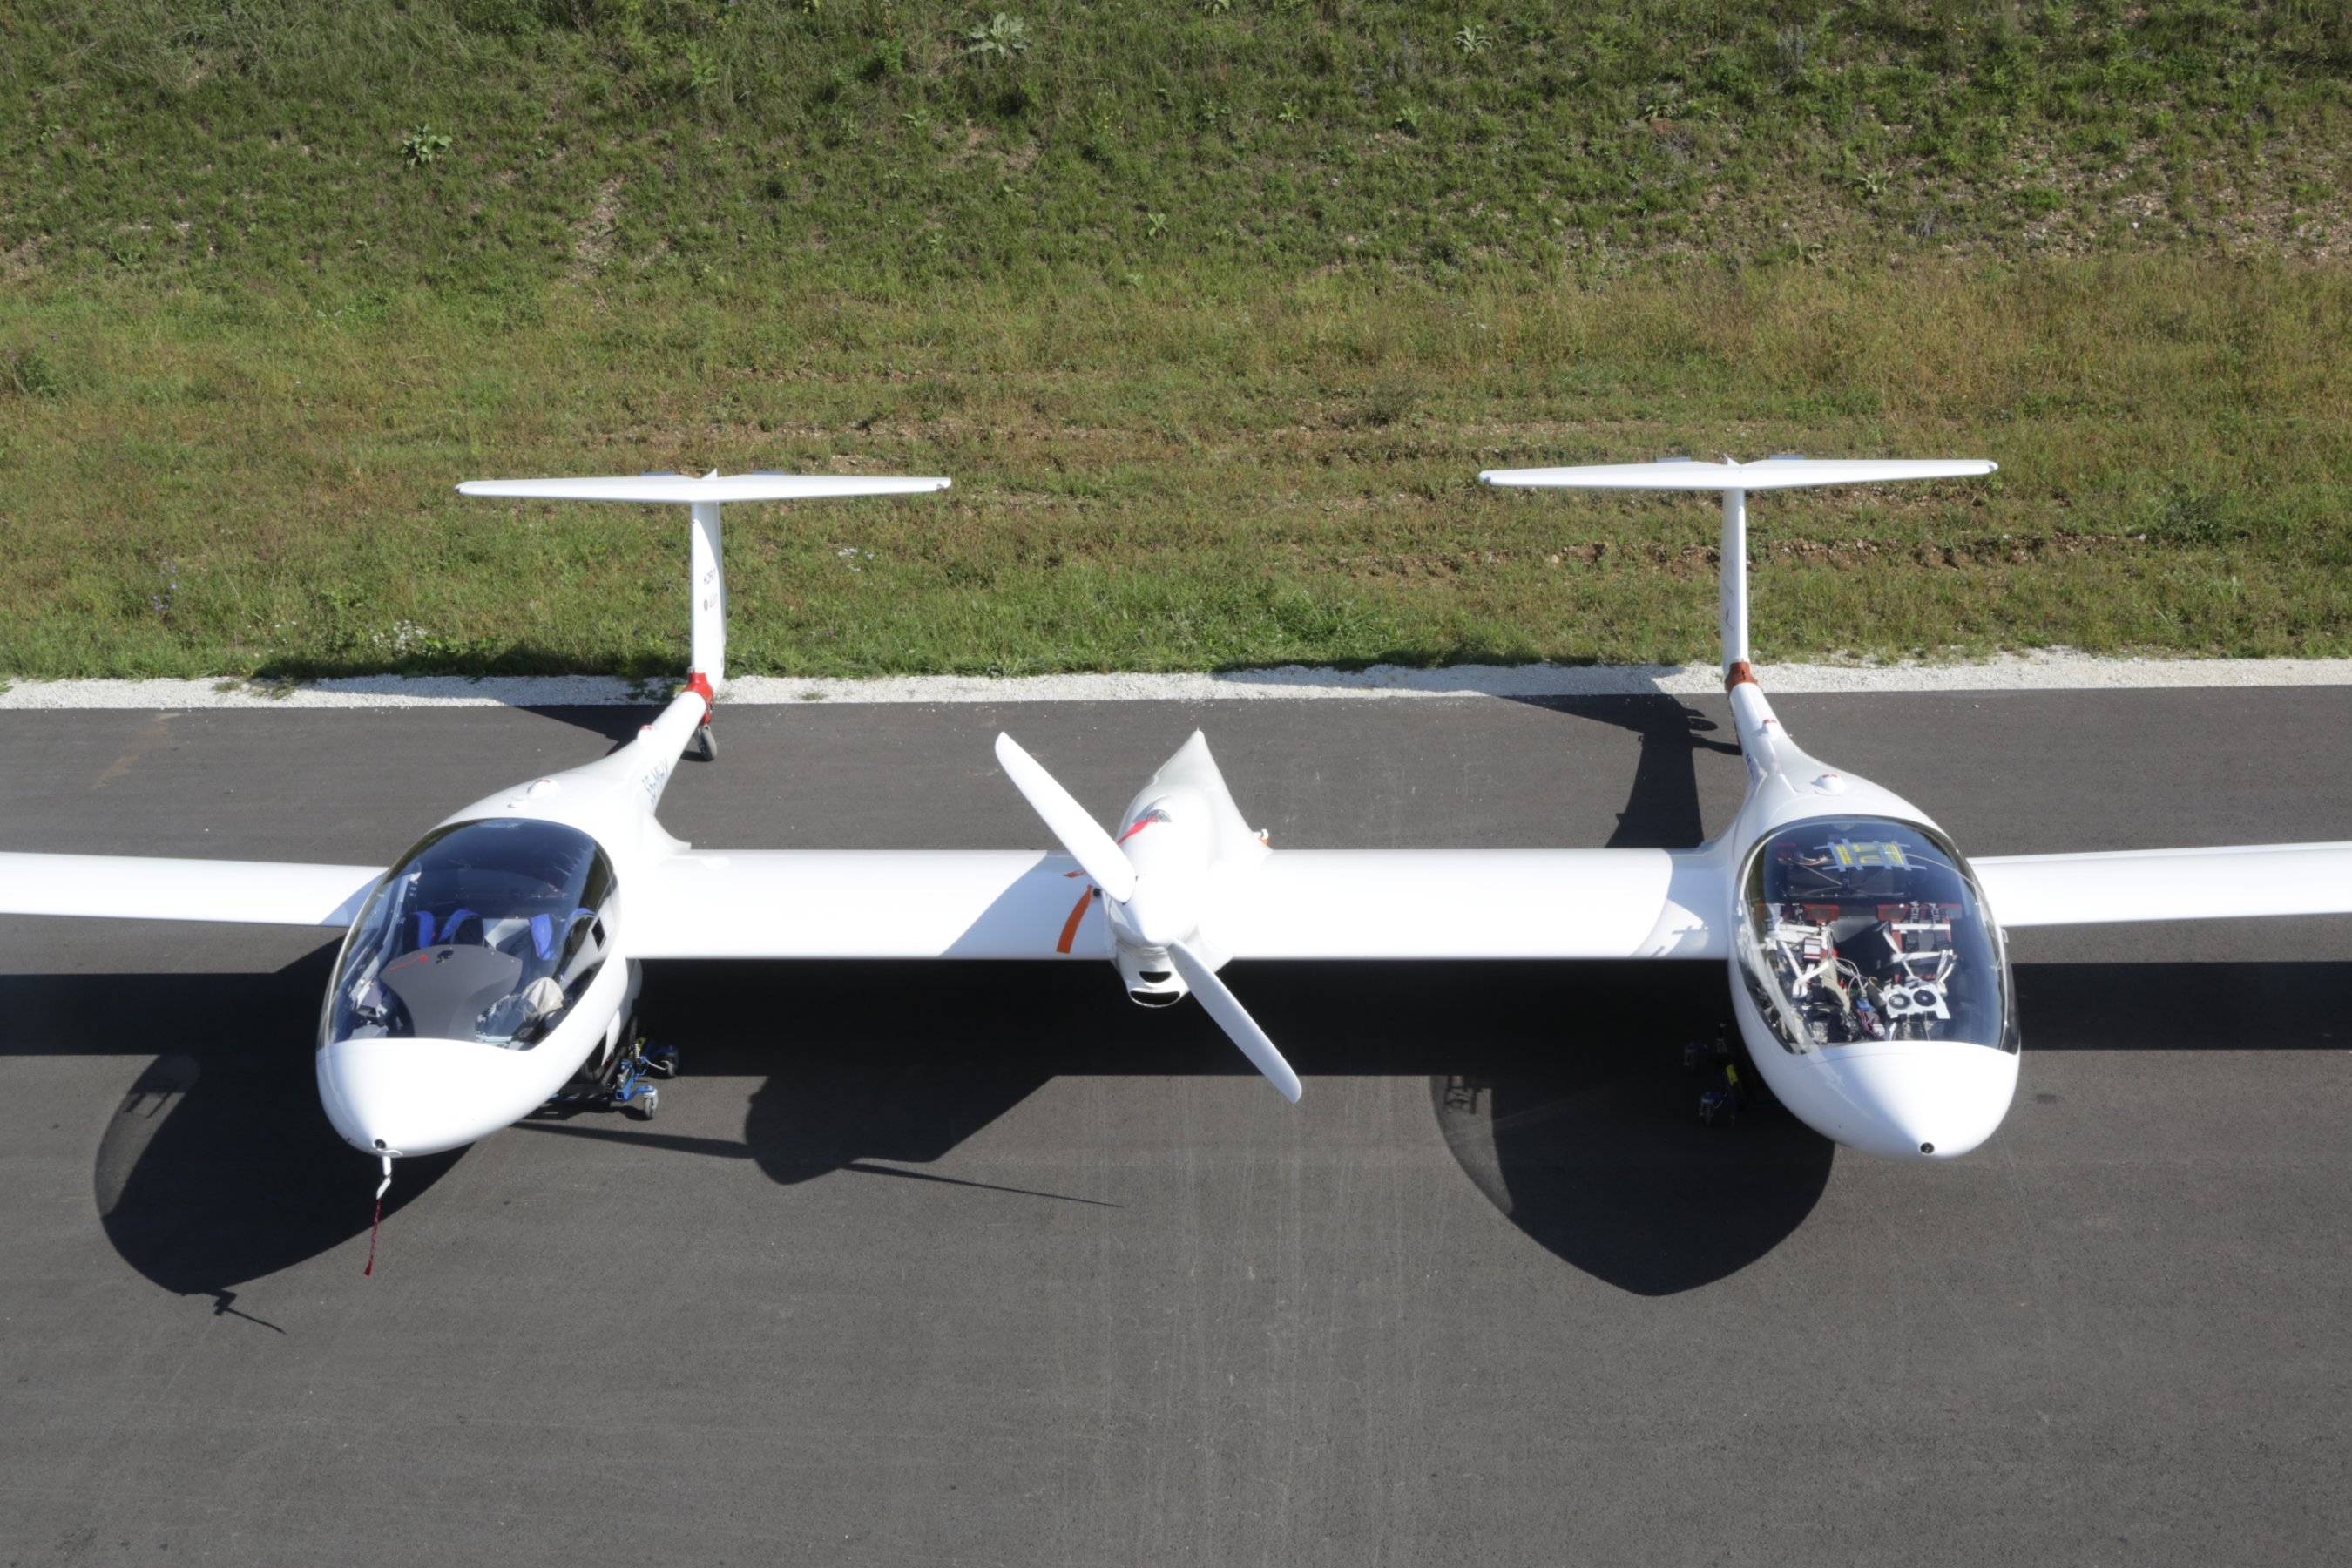 The plane that runs on hydrogen and emits only water | CNN